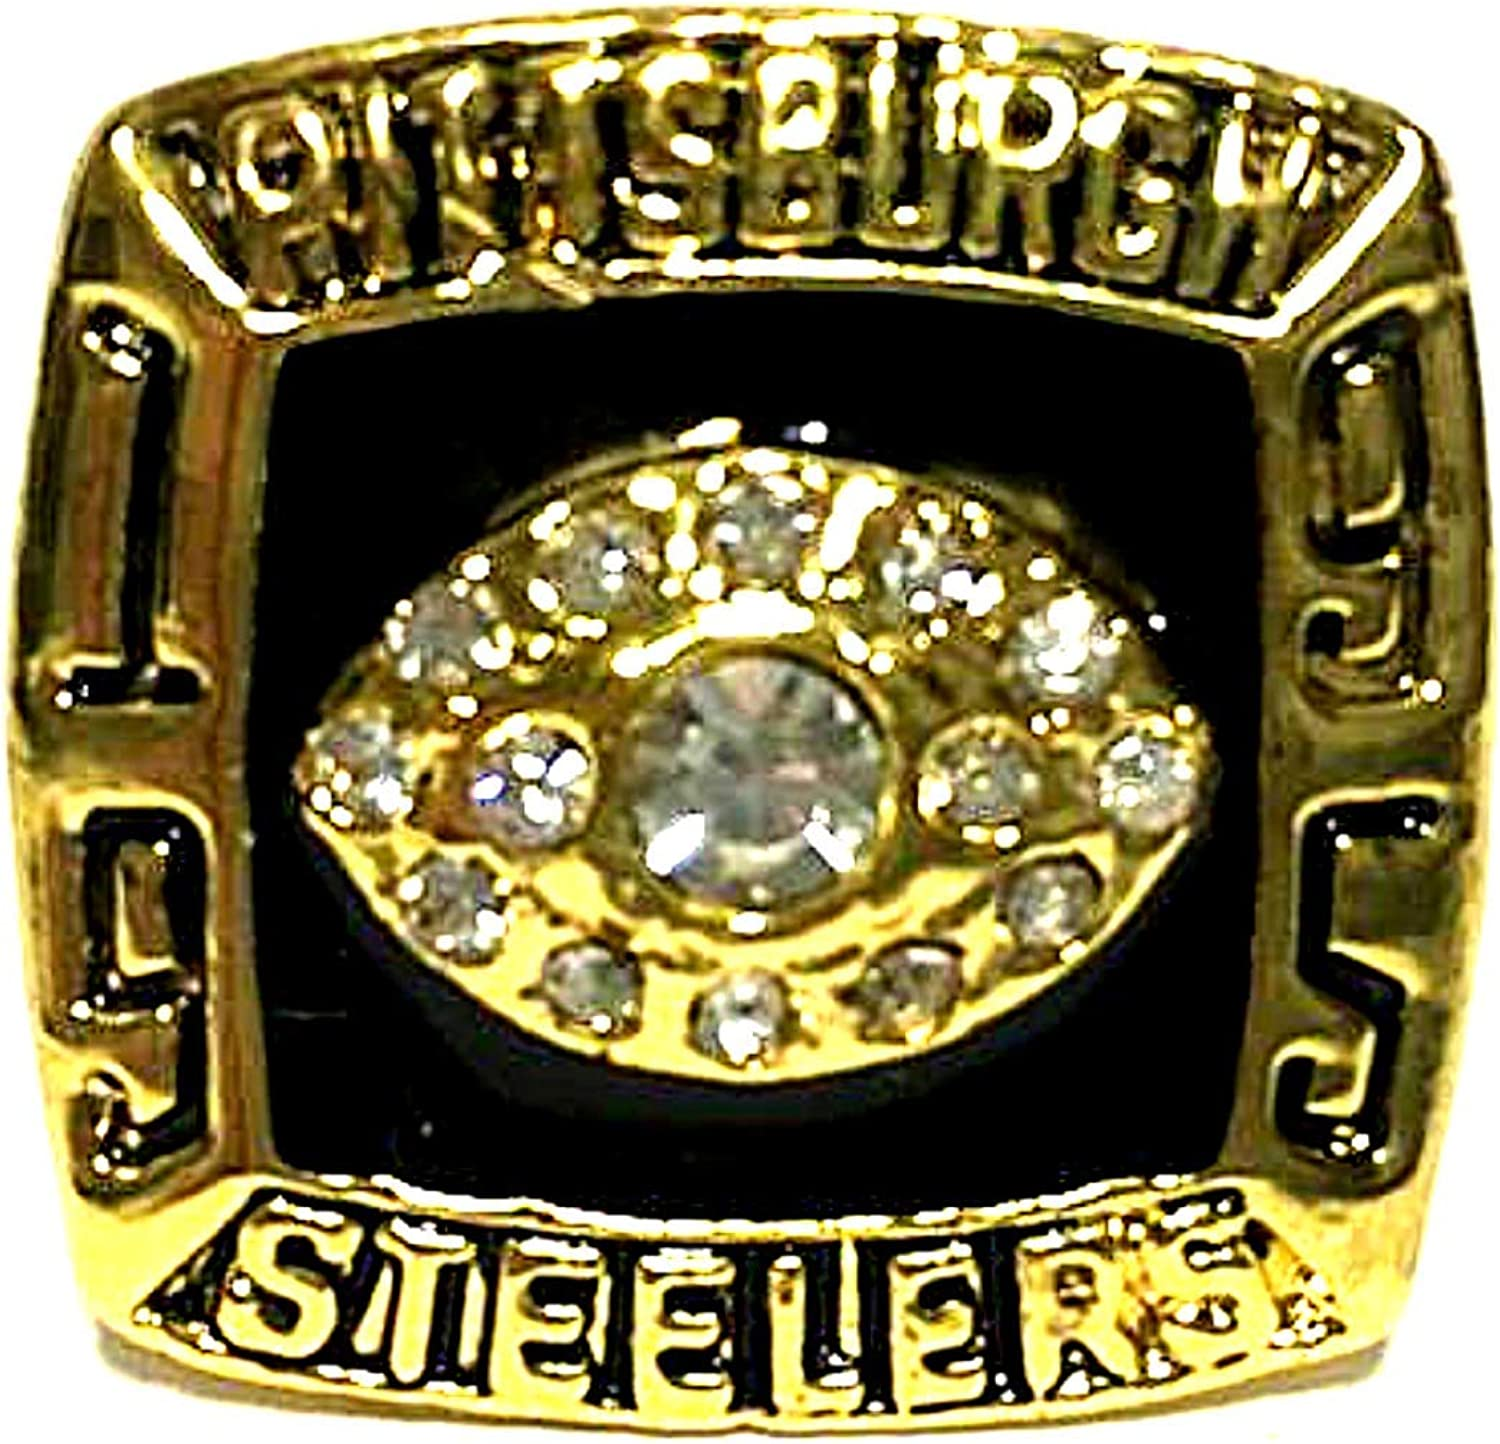 Pittsburgh Steelers 1995 AFC Champions Fred McAfee NFL Replica Rings